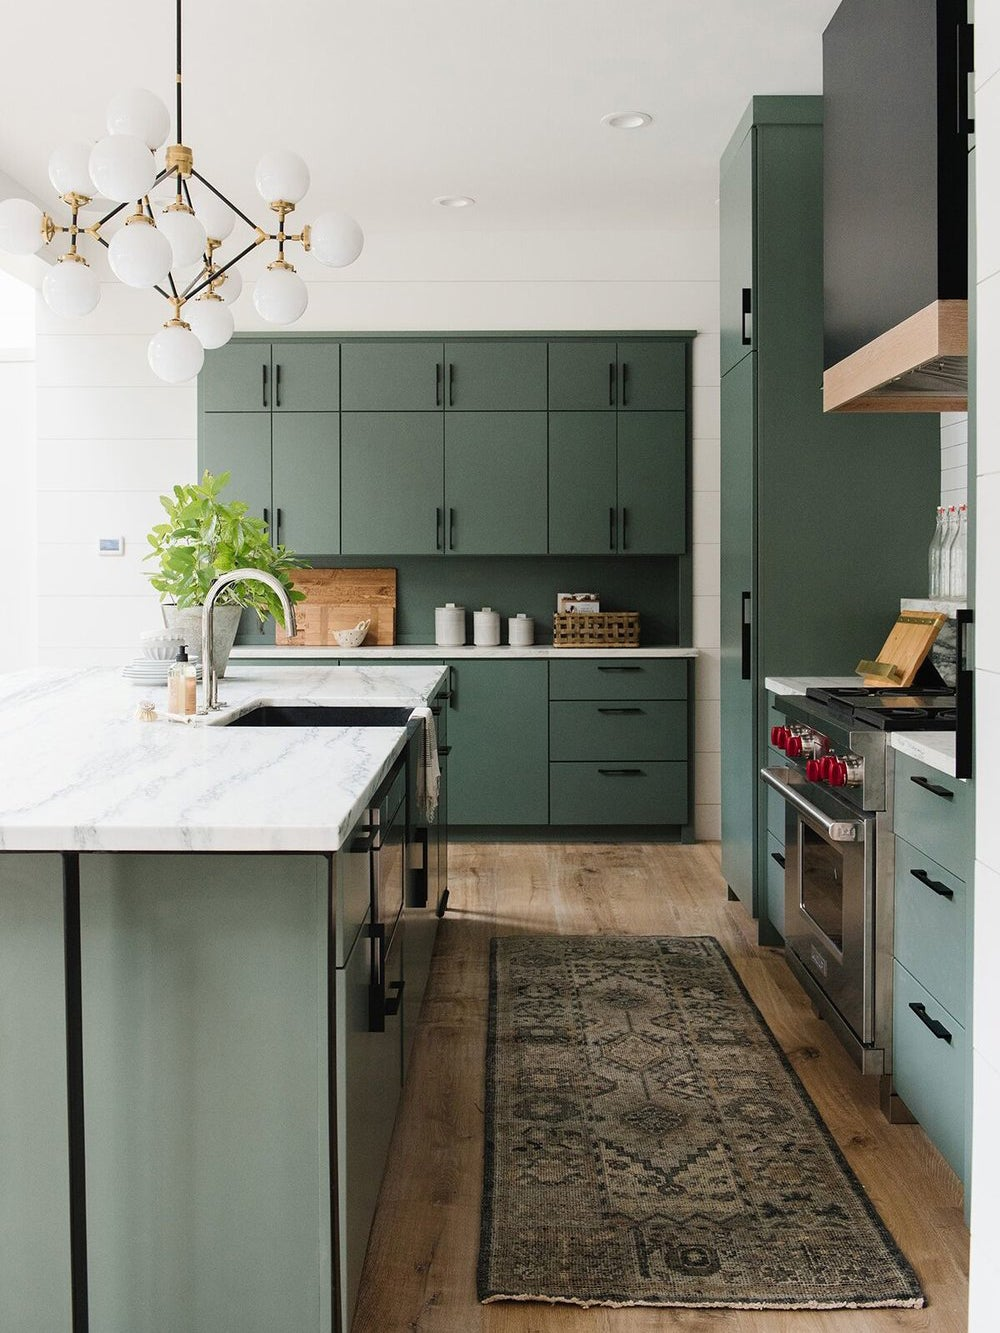 10 Sage Green Decorating Ideas That Feel Very 2020